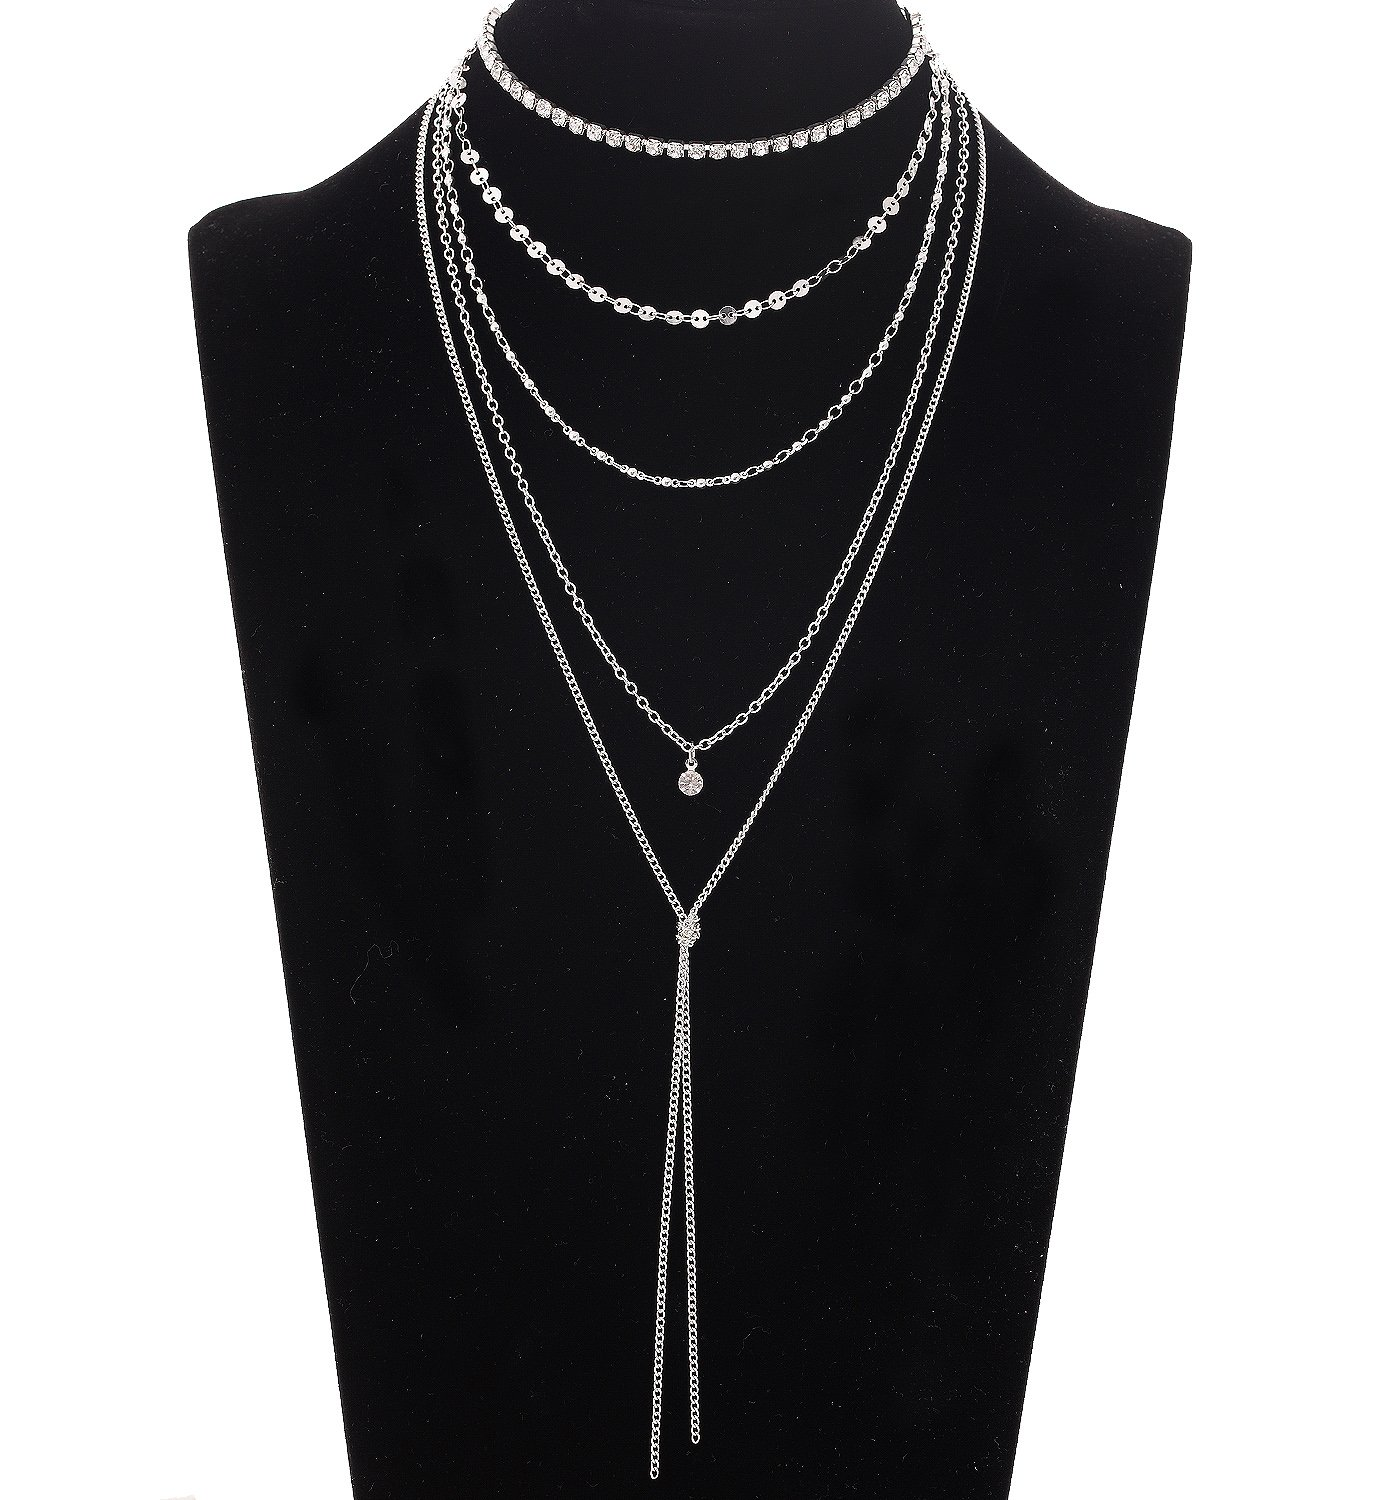 VUJANTIRY Sequins Chain Choker Necklace Multilayer Long Tassel Pendant Necklace Y (Silver)